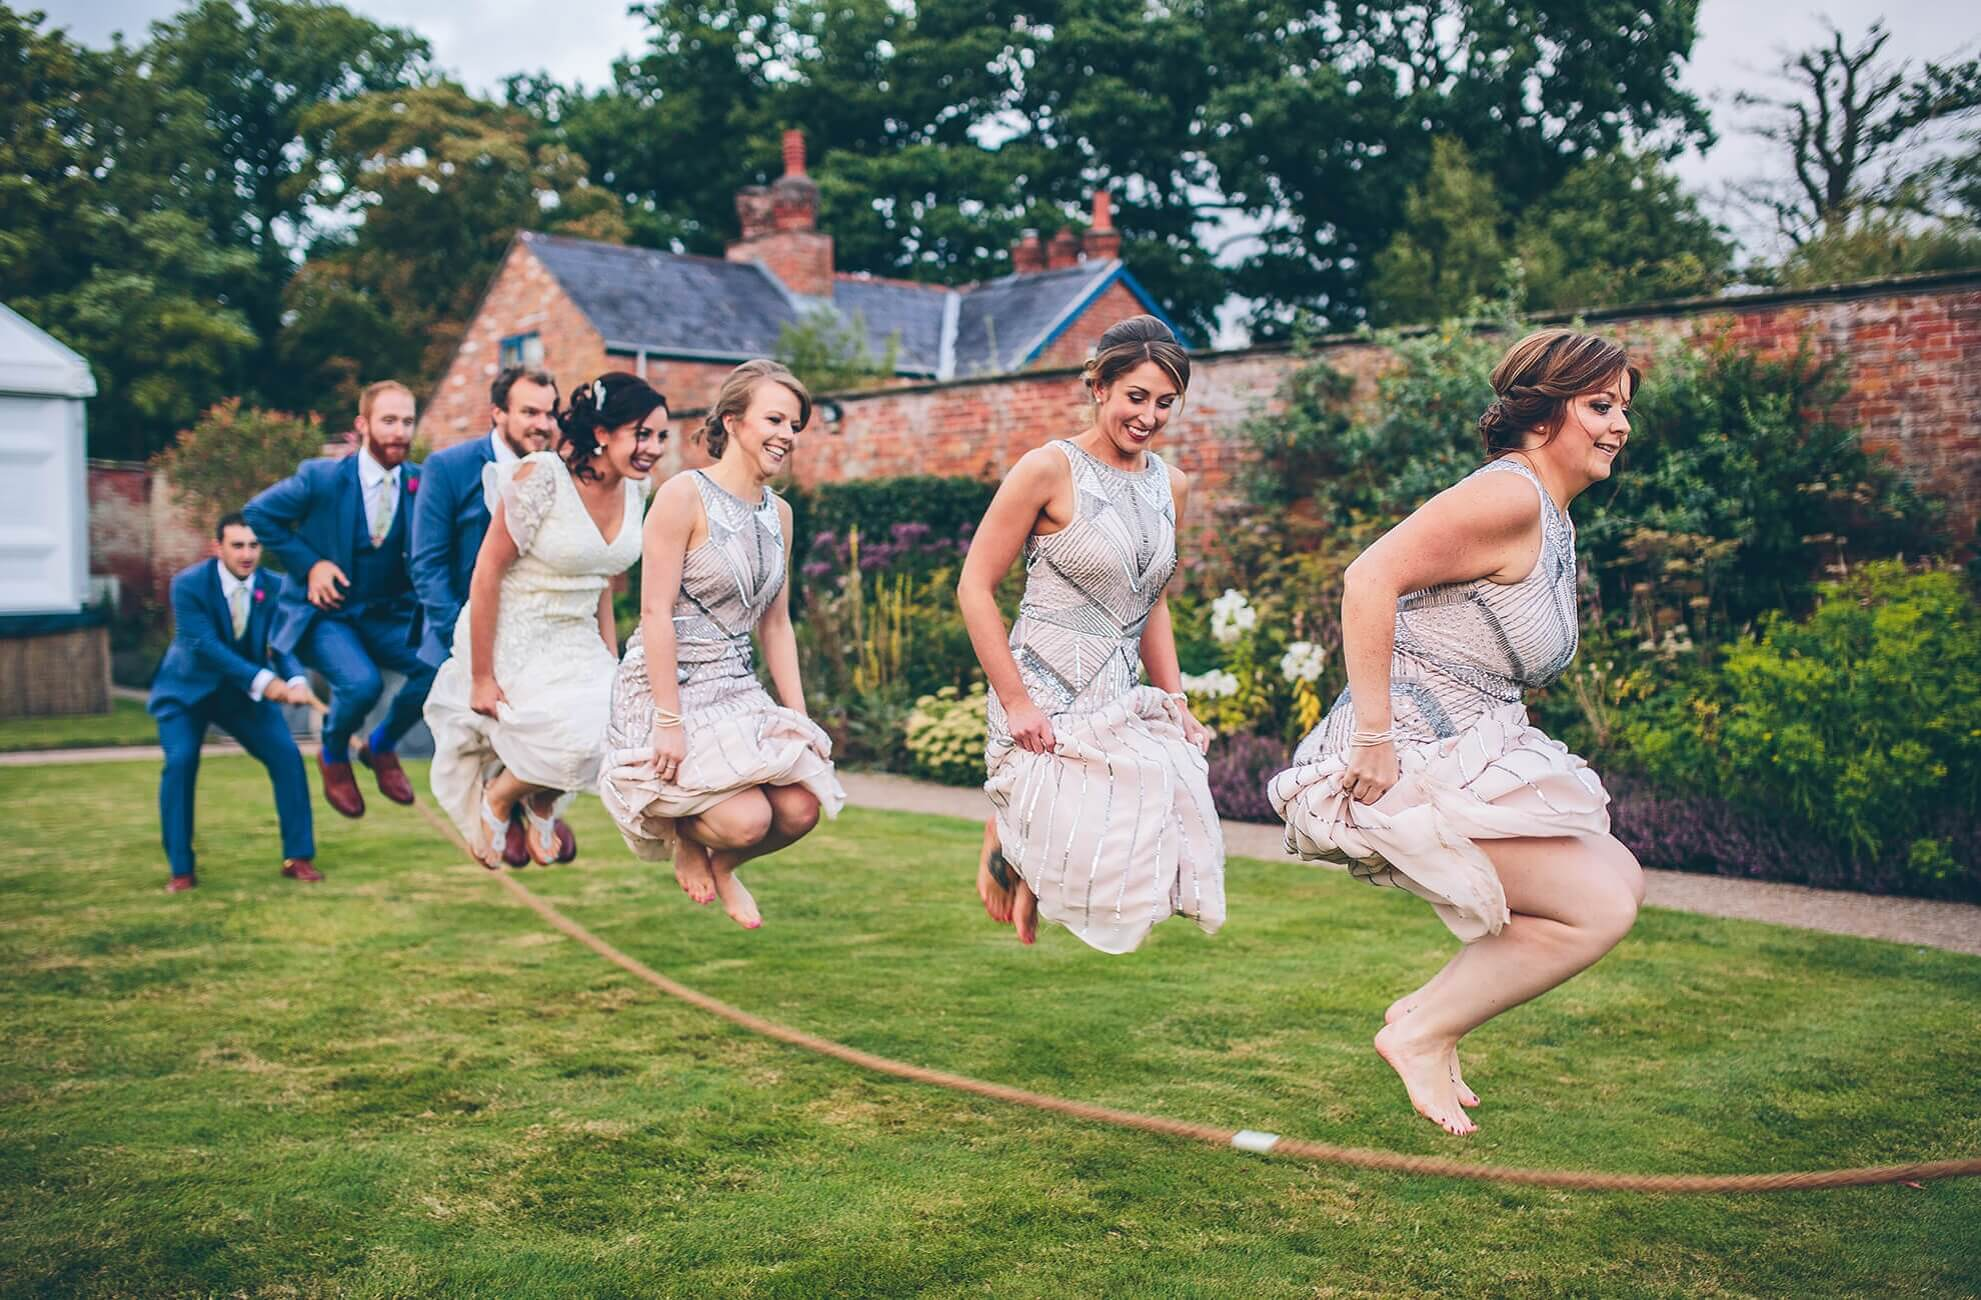 21 Wedding Reception Games That'll Be Perfect To Entertain Your Guests